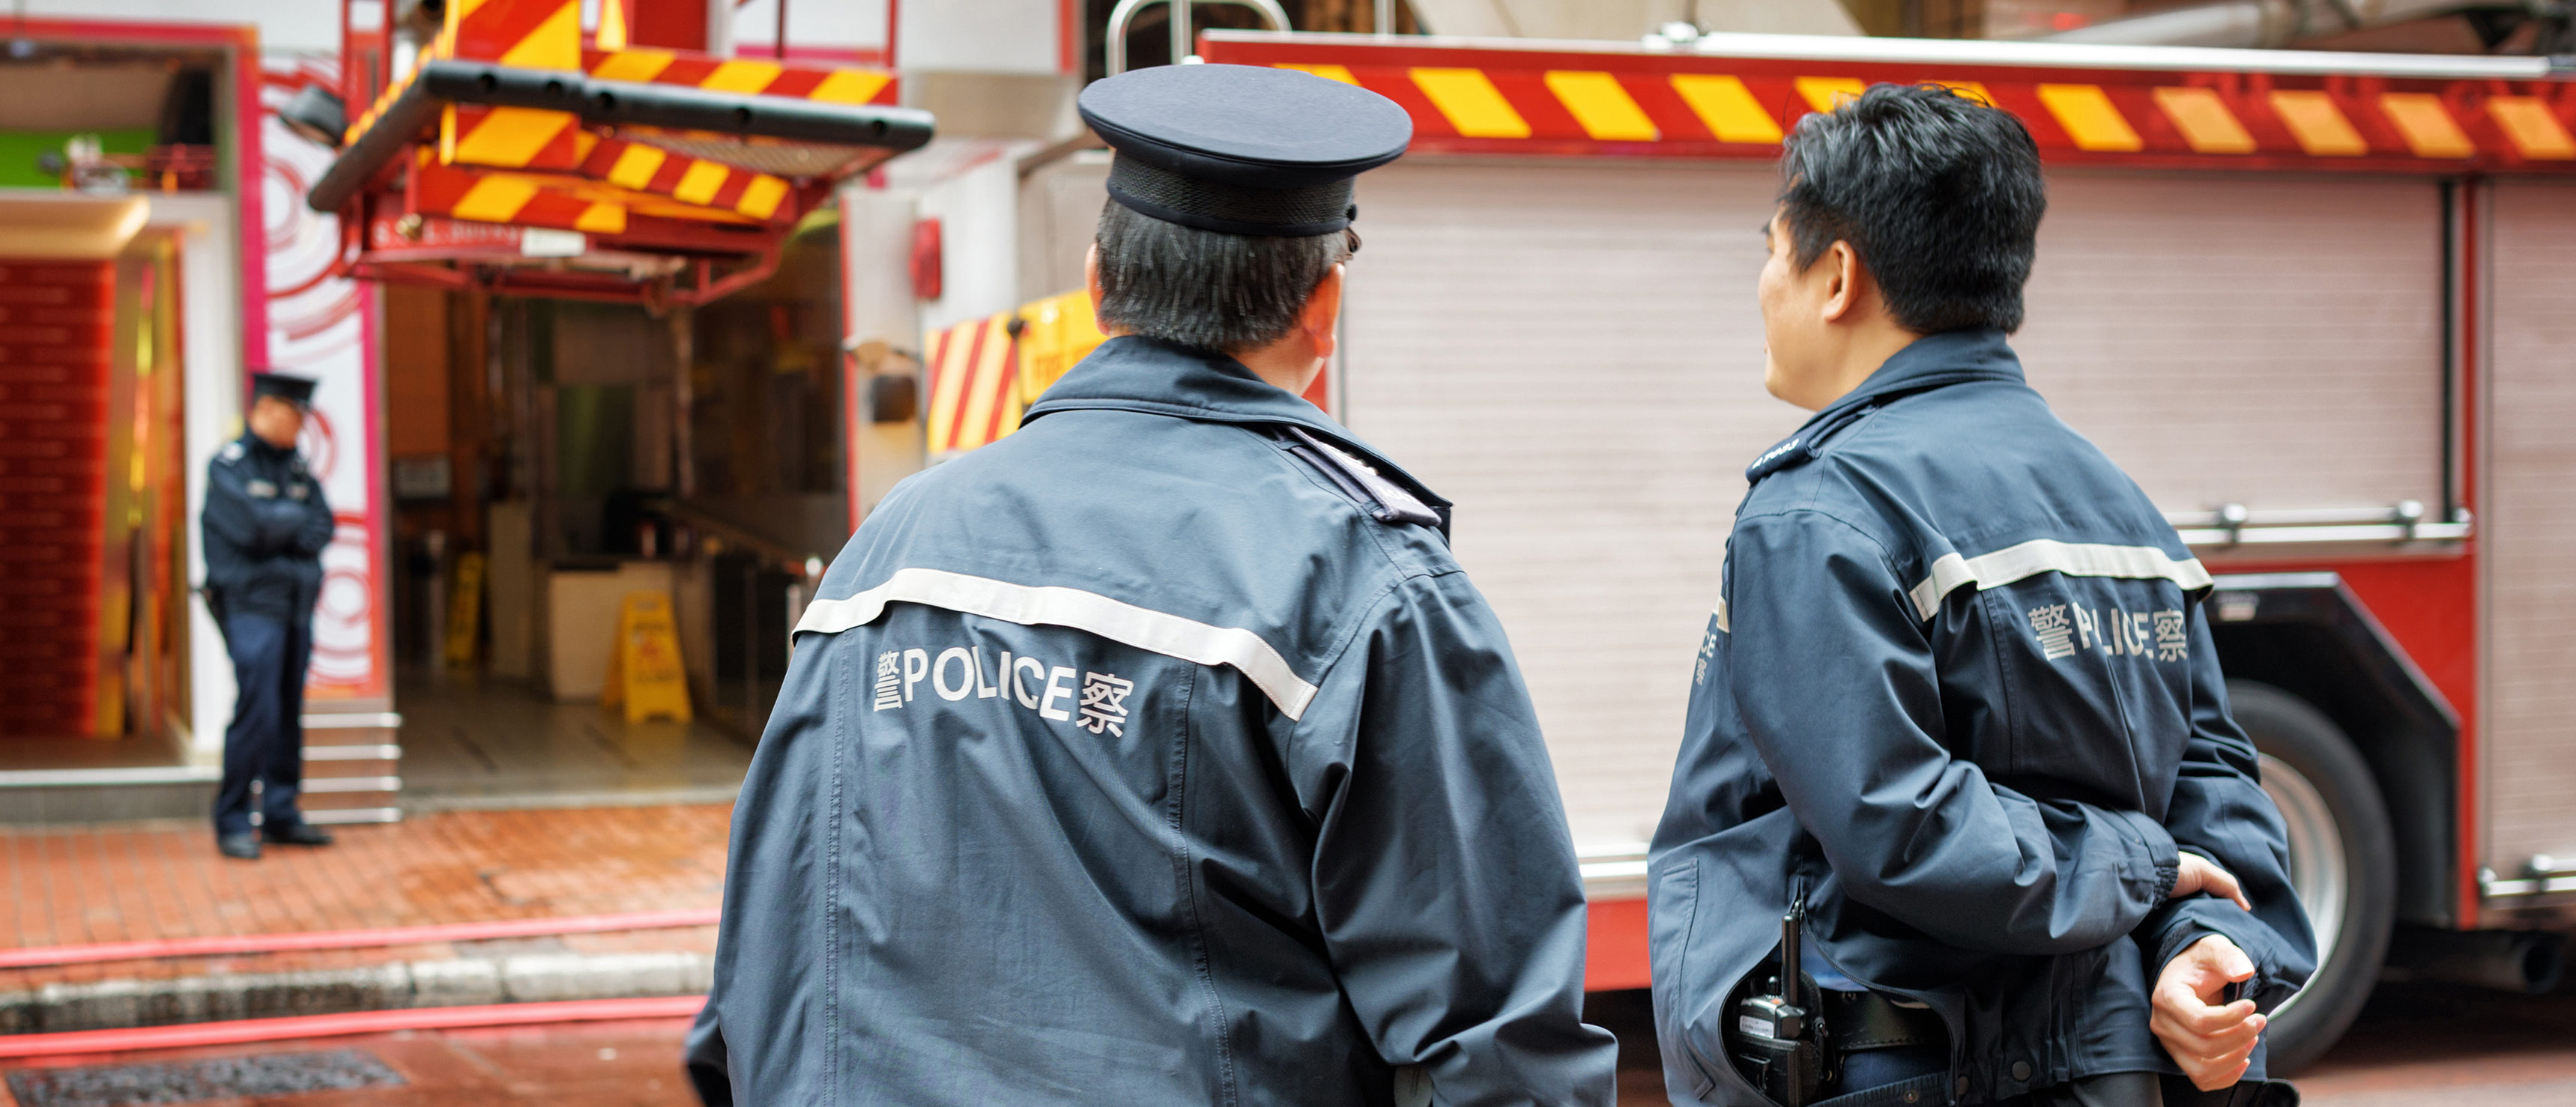 Chinese police (Shutterstock/Efired)